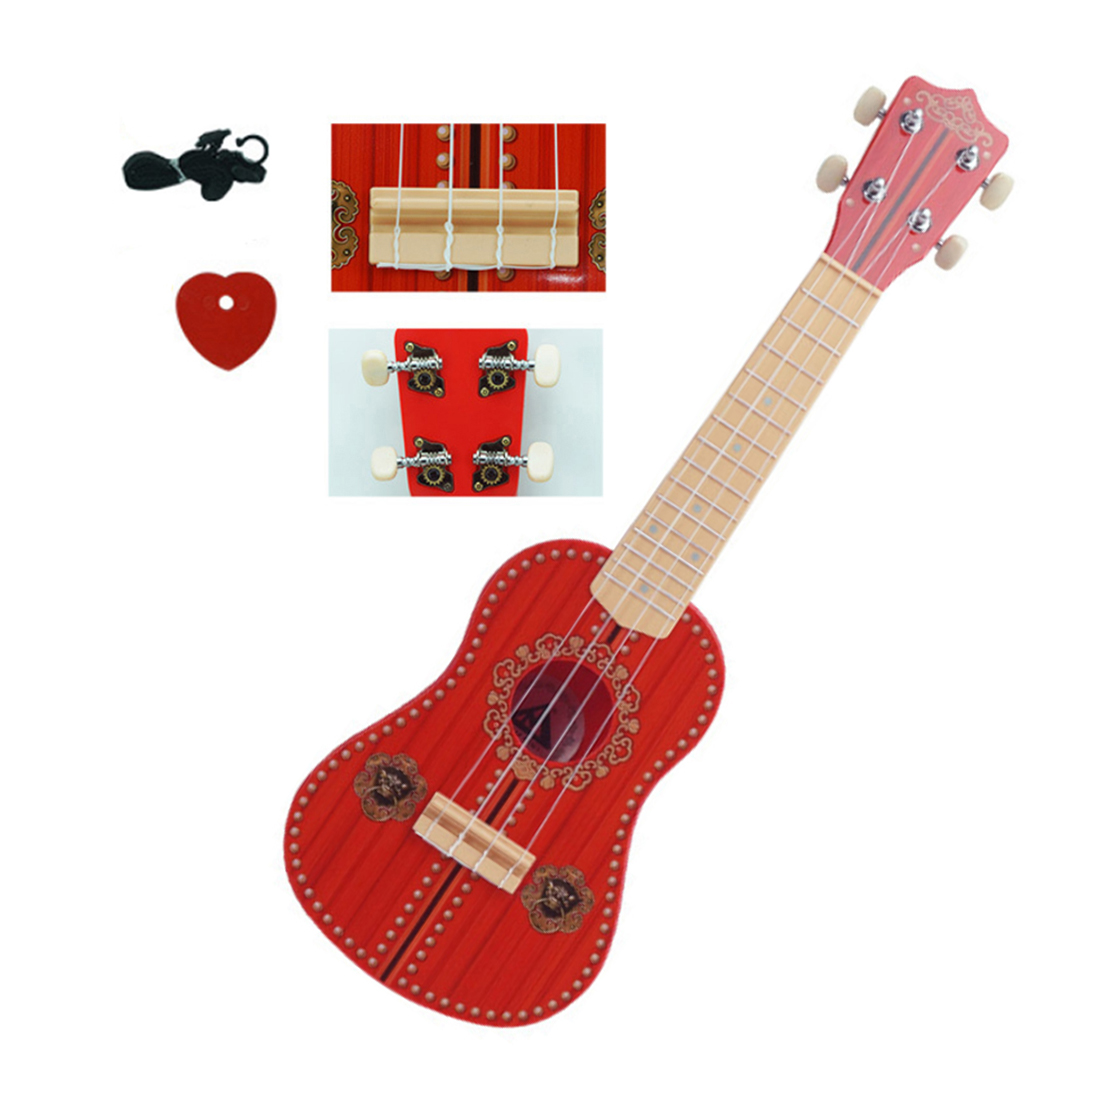 Surwish 186 Series Children Early Education Musical Instrument Guitar Ukulele with 4 Strings Support Kid Learning Kit цена